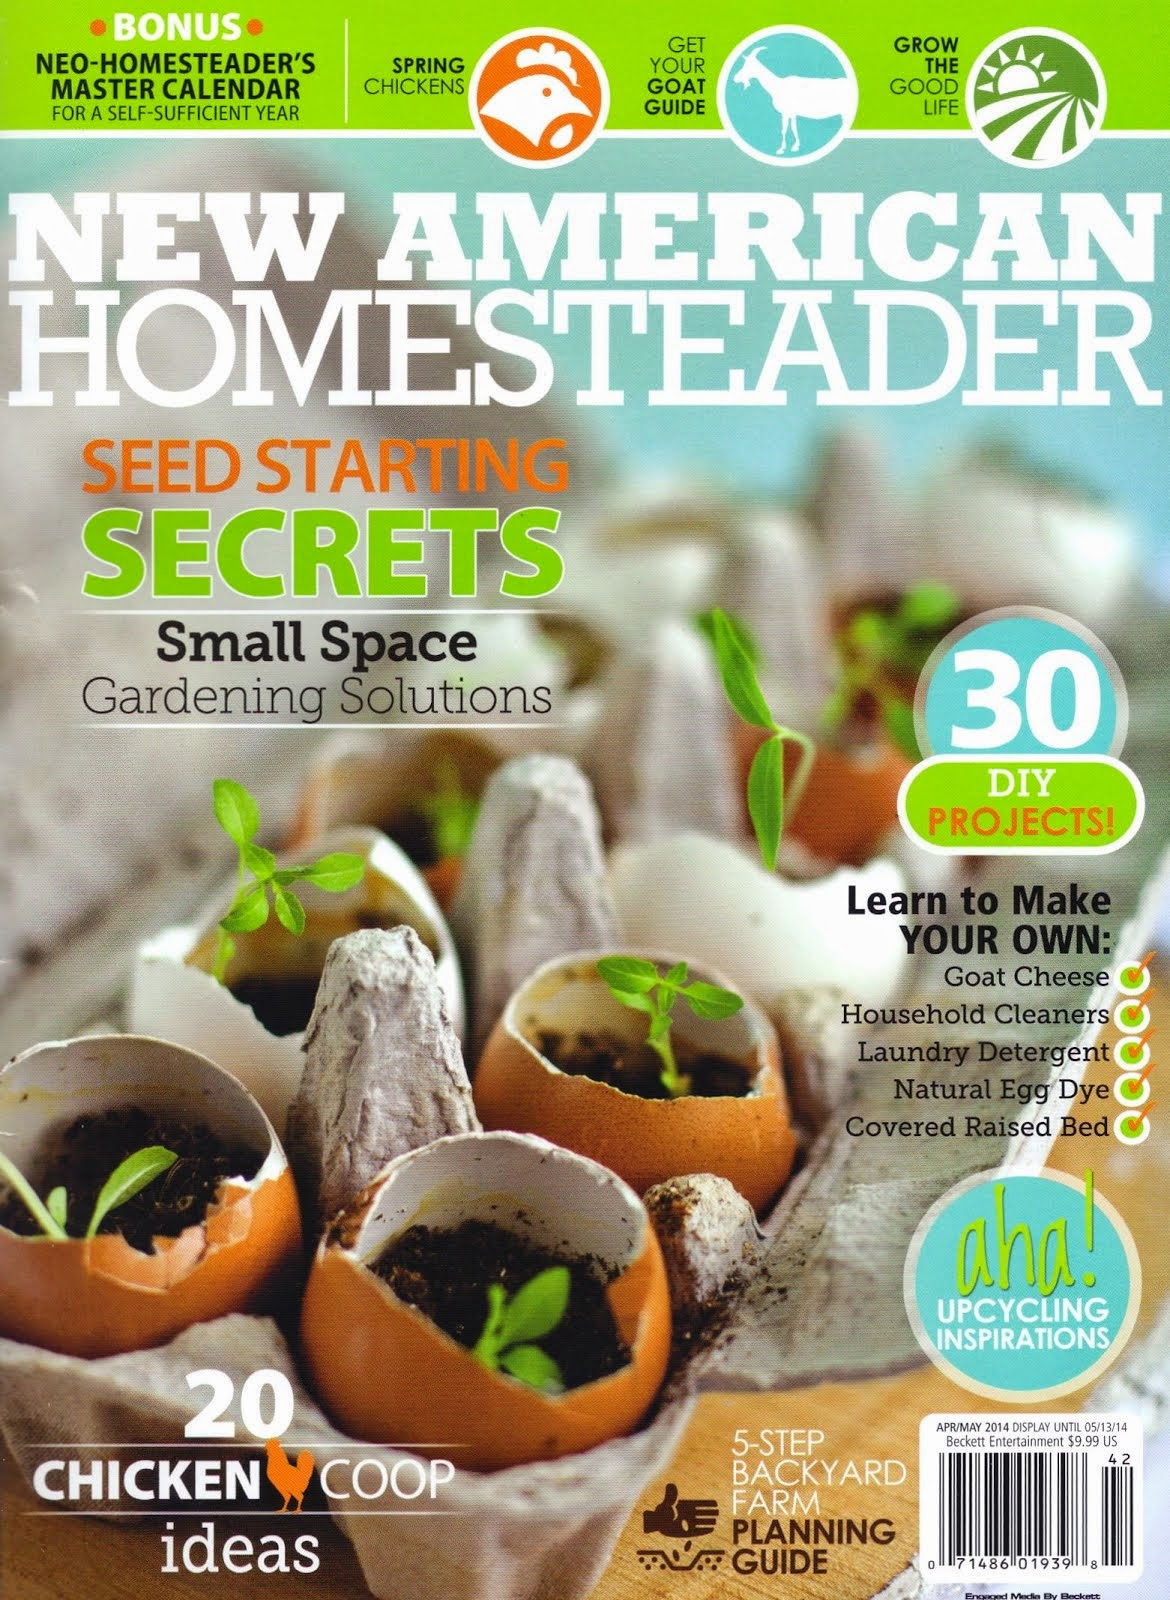 new american homesteader